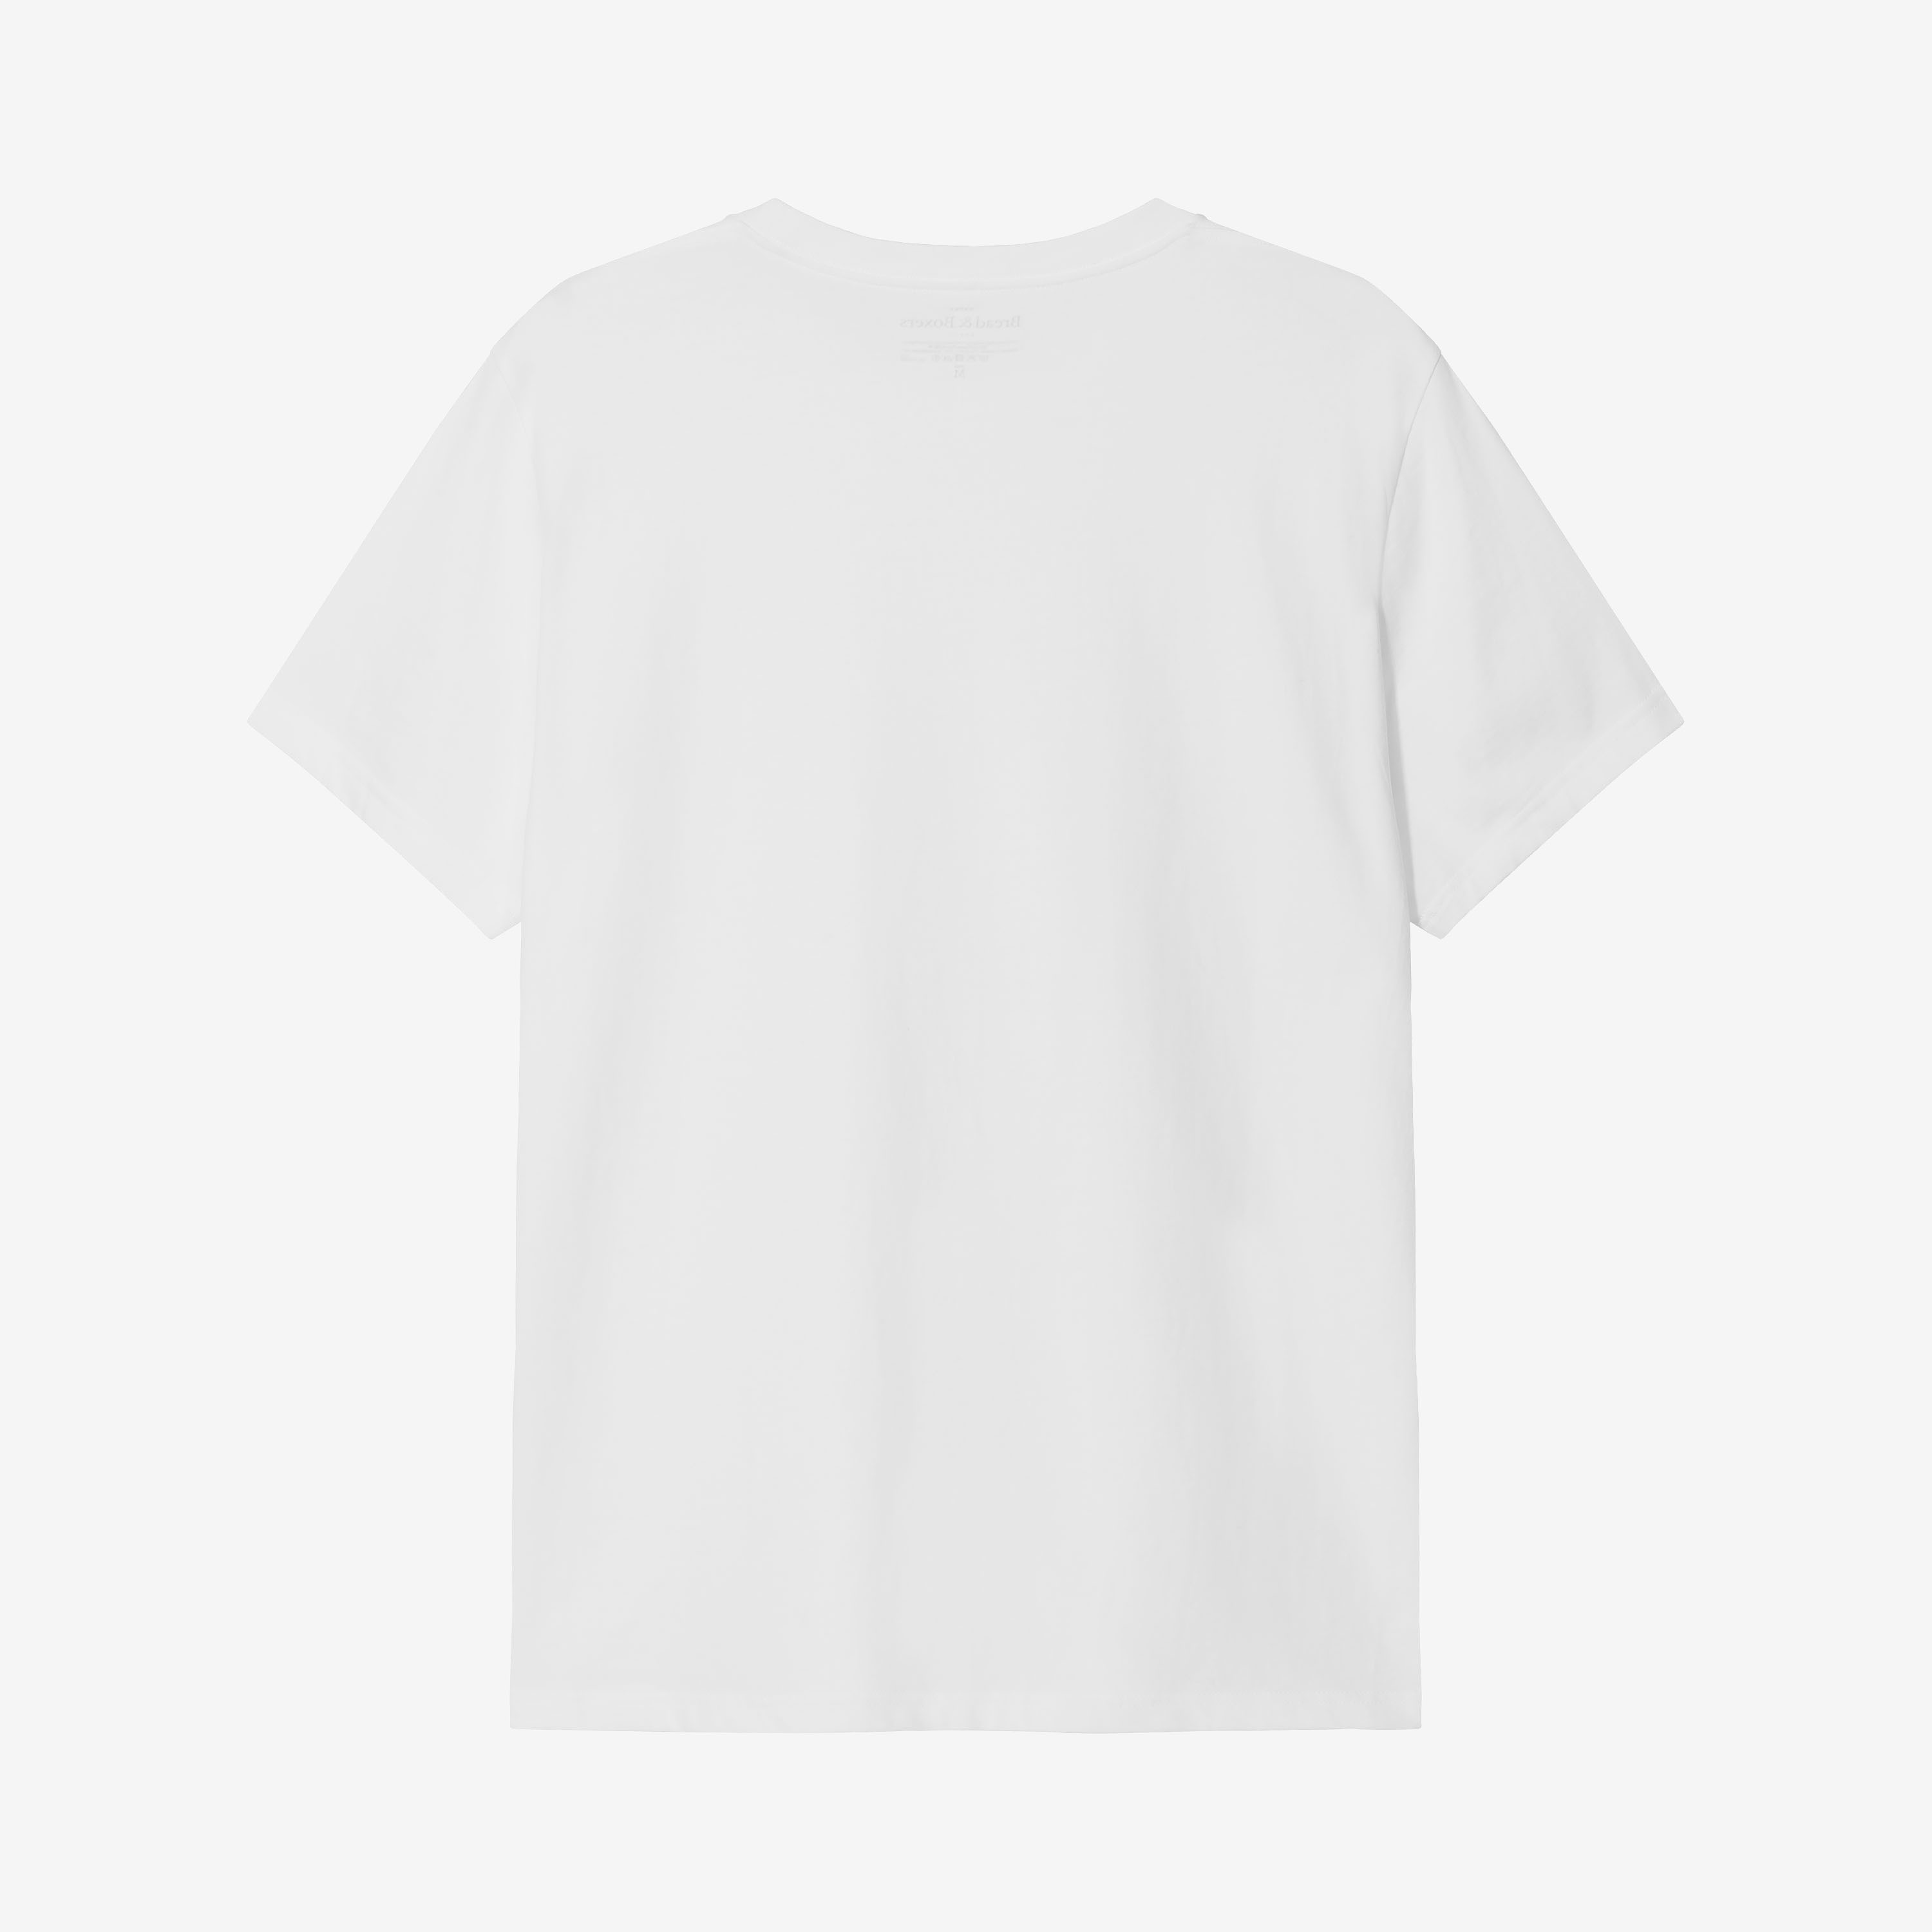 111201_Man_Crew-Neck_cotton_white-B